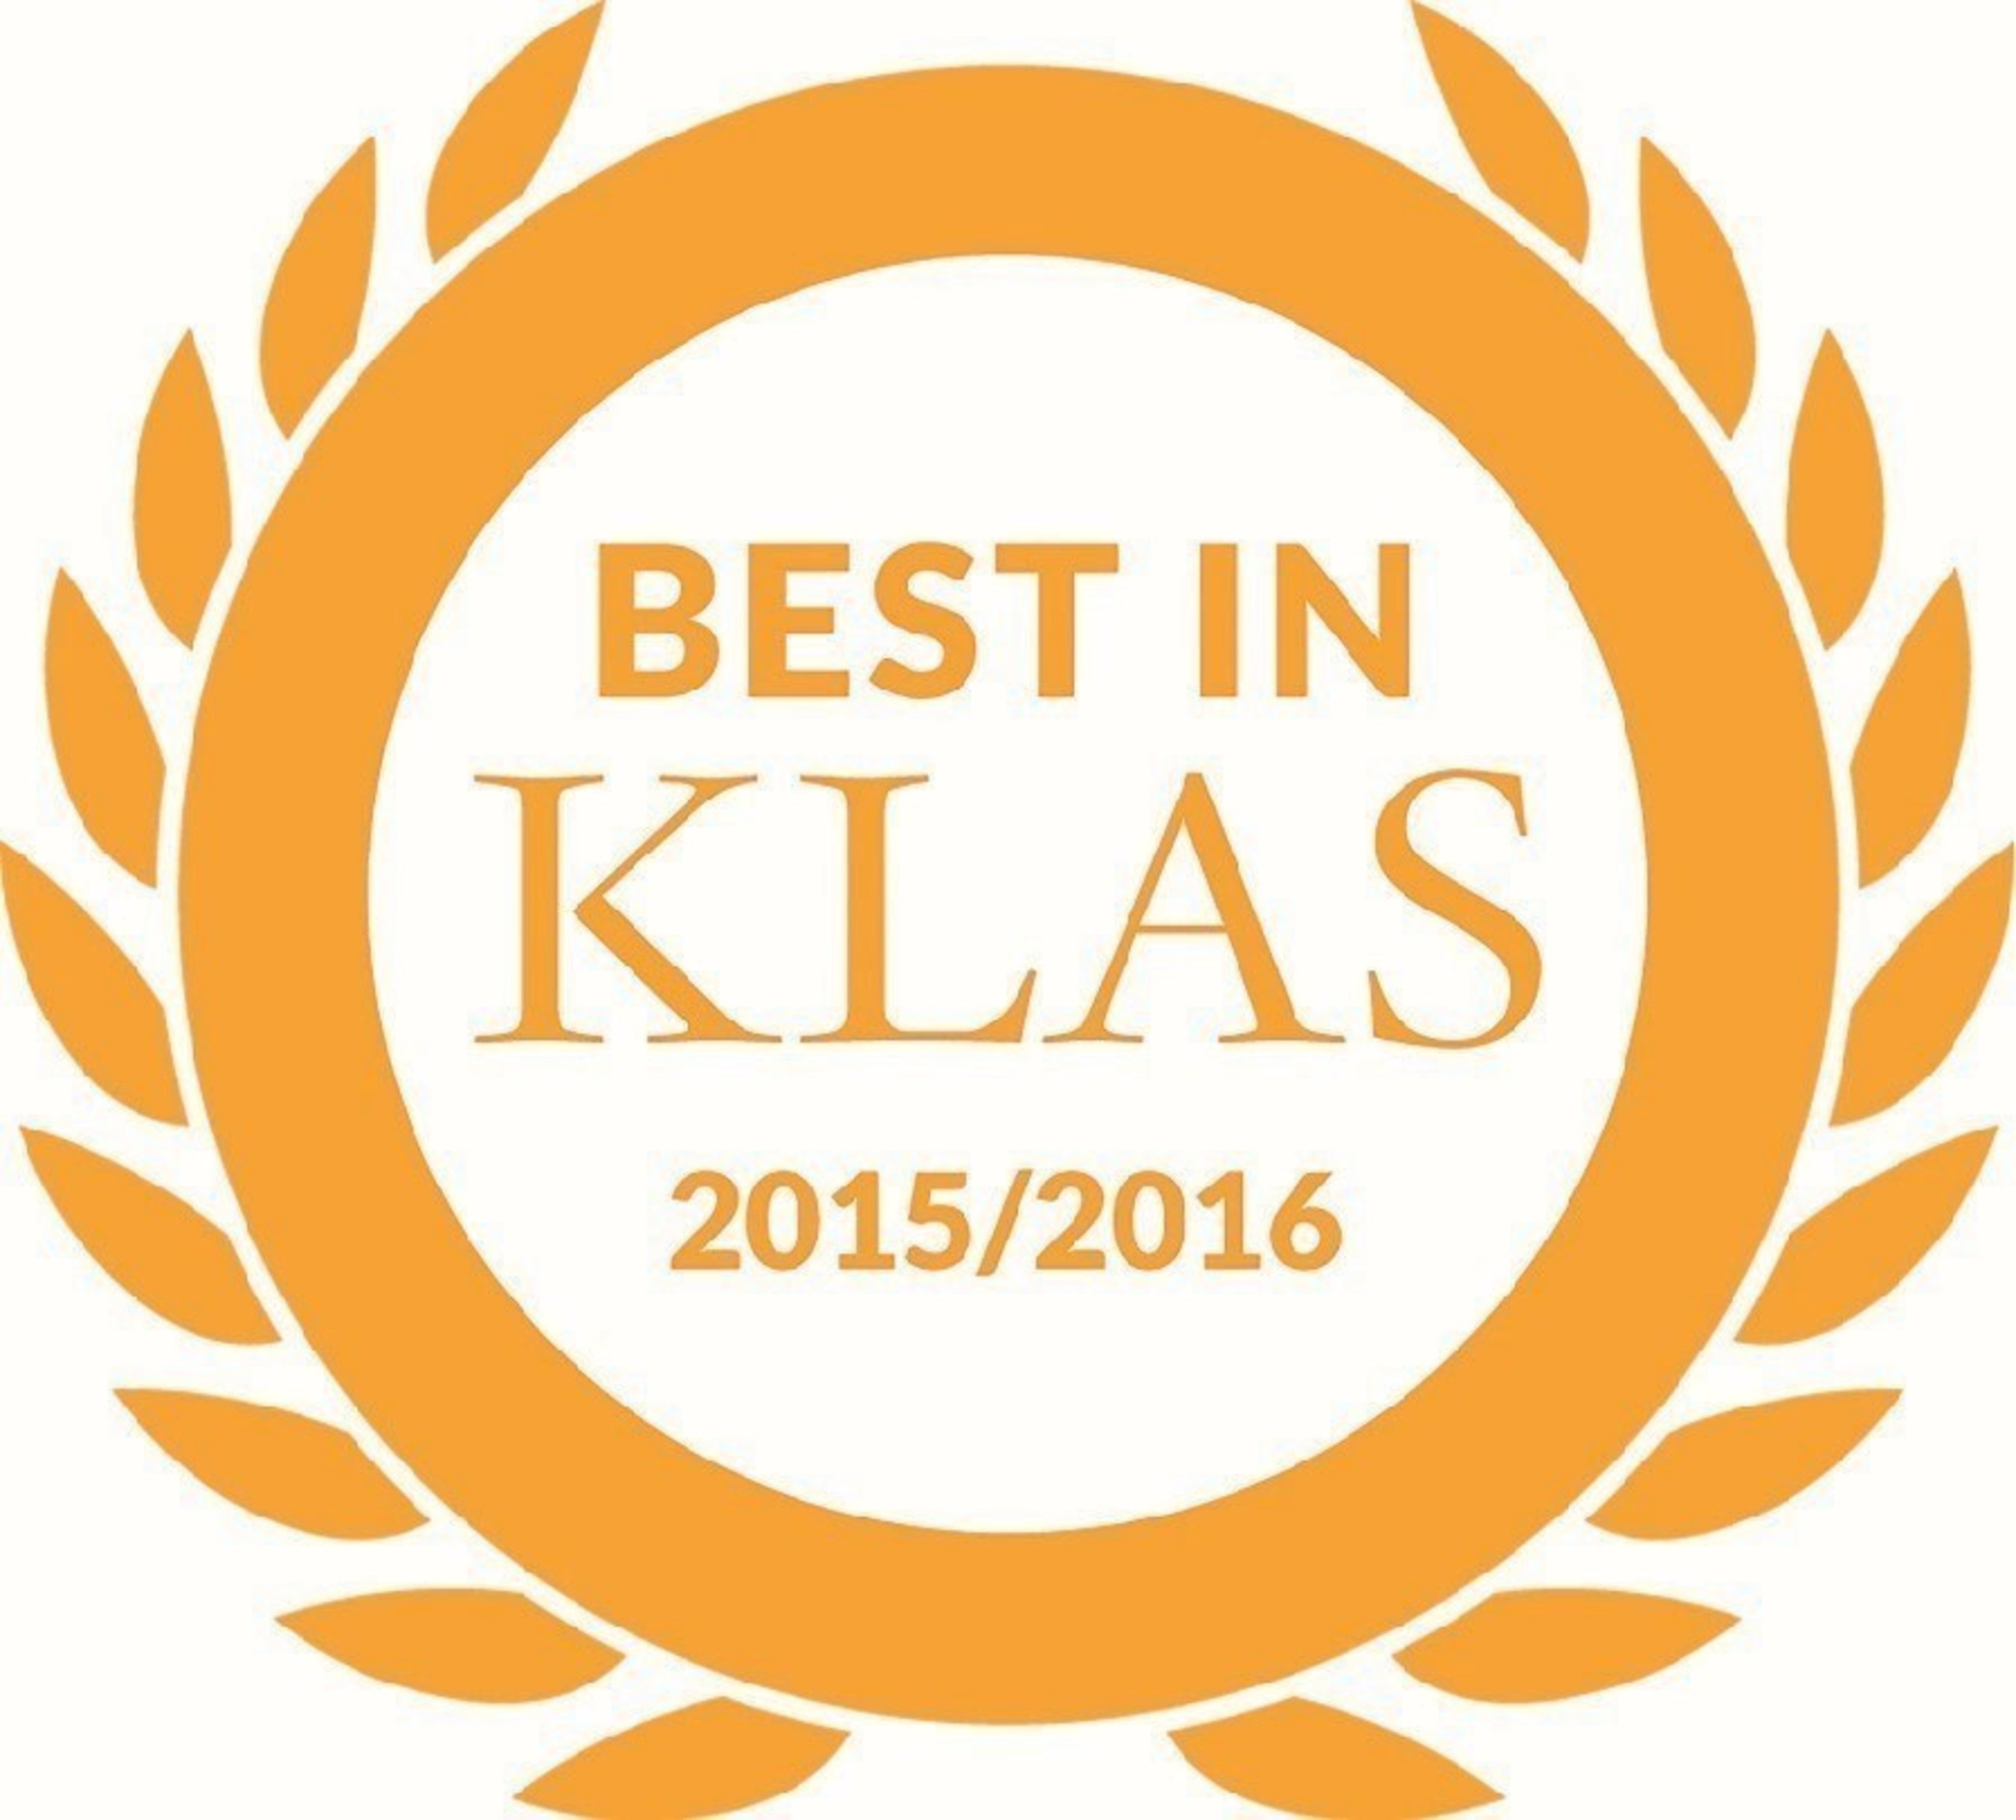 ZirMed Recognized as 2015/2016 Best in KLAS Vendor in the Claims and Clearinghouse Award Segment